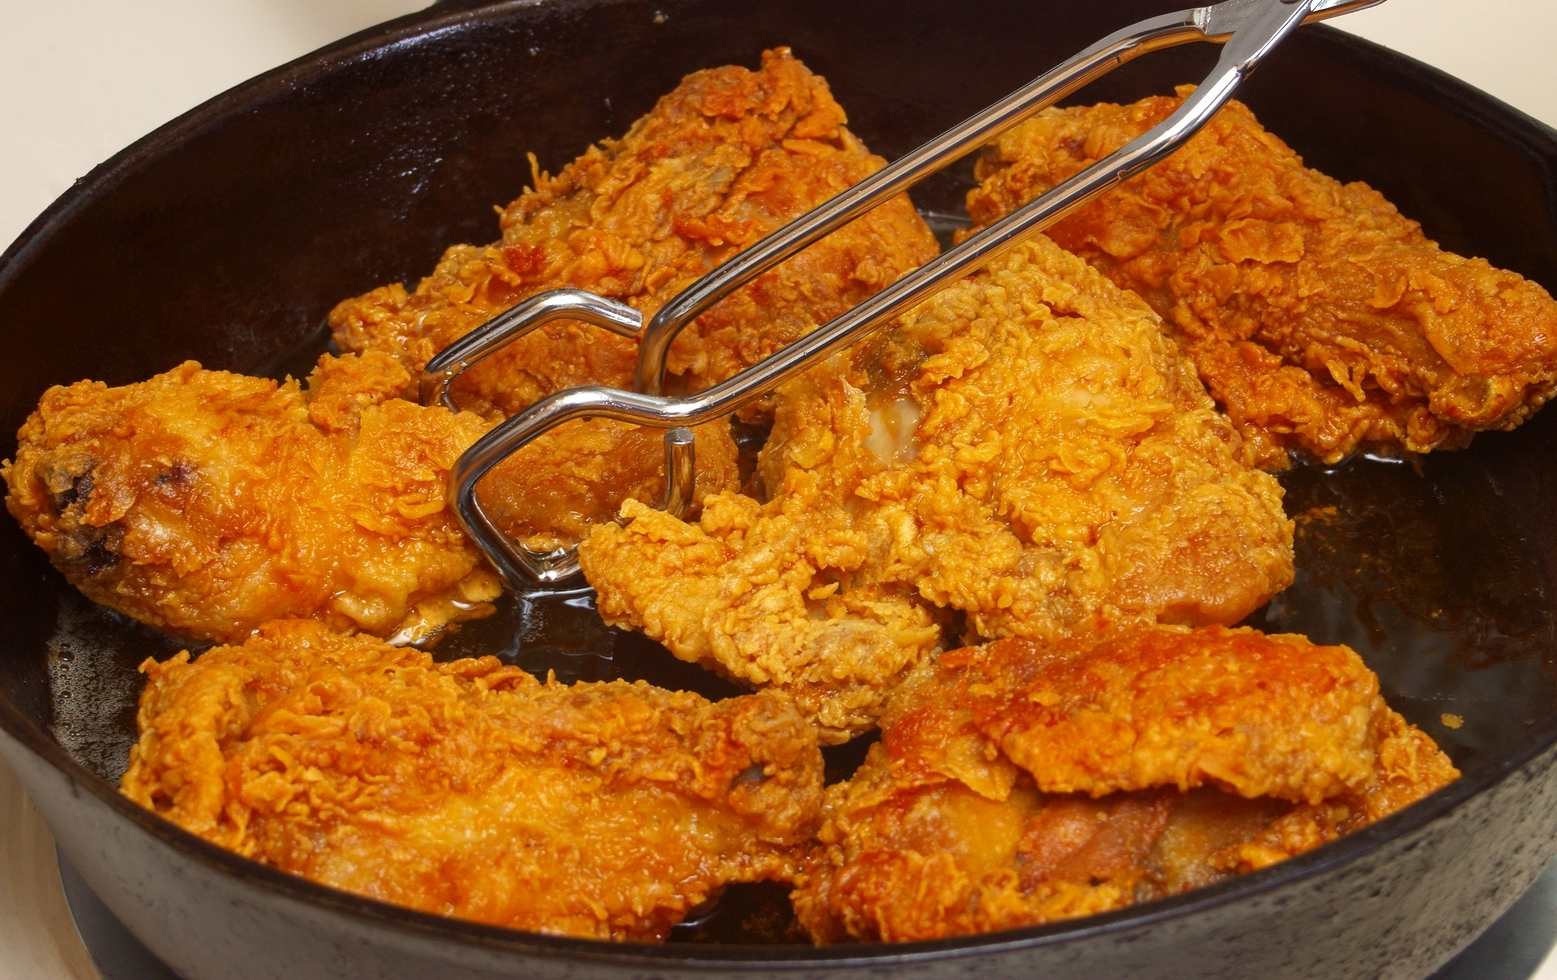 Chicken cooking in a cast-iron frying pan